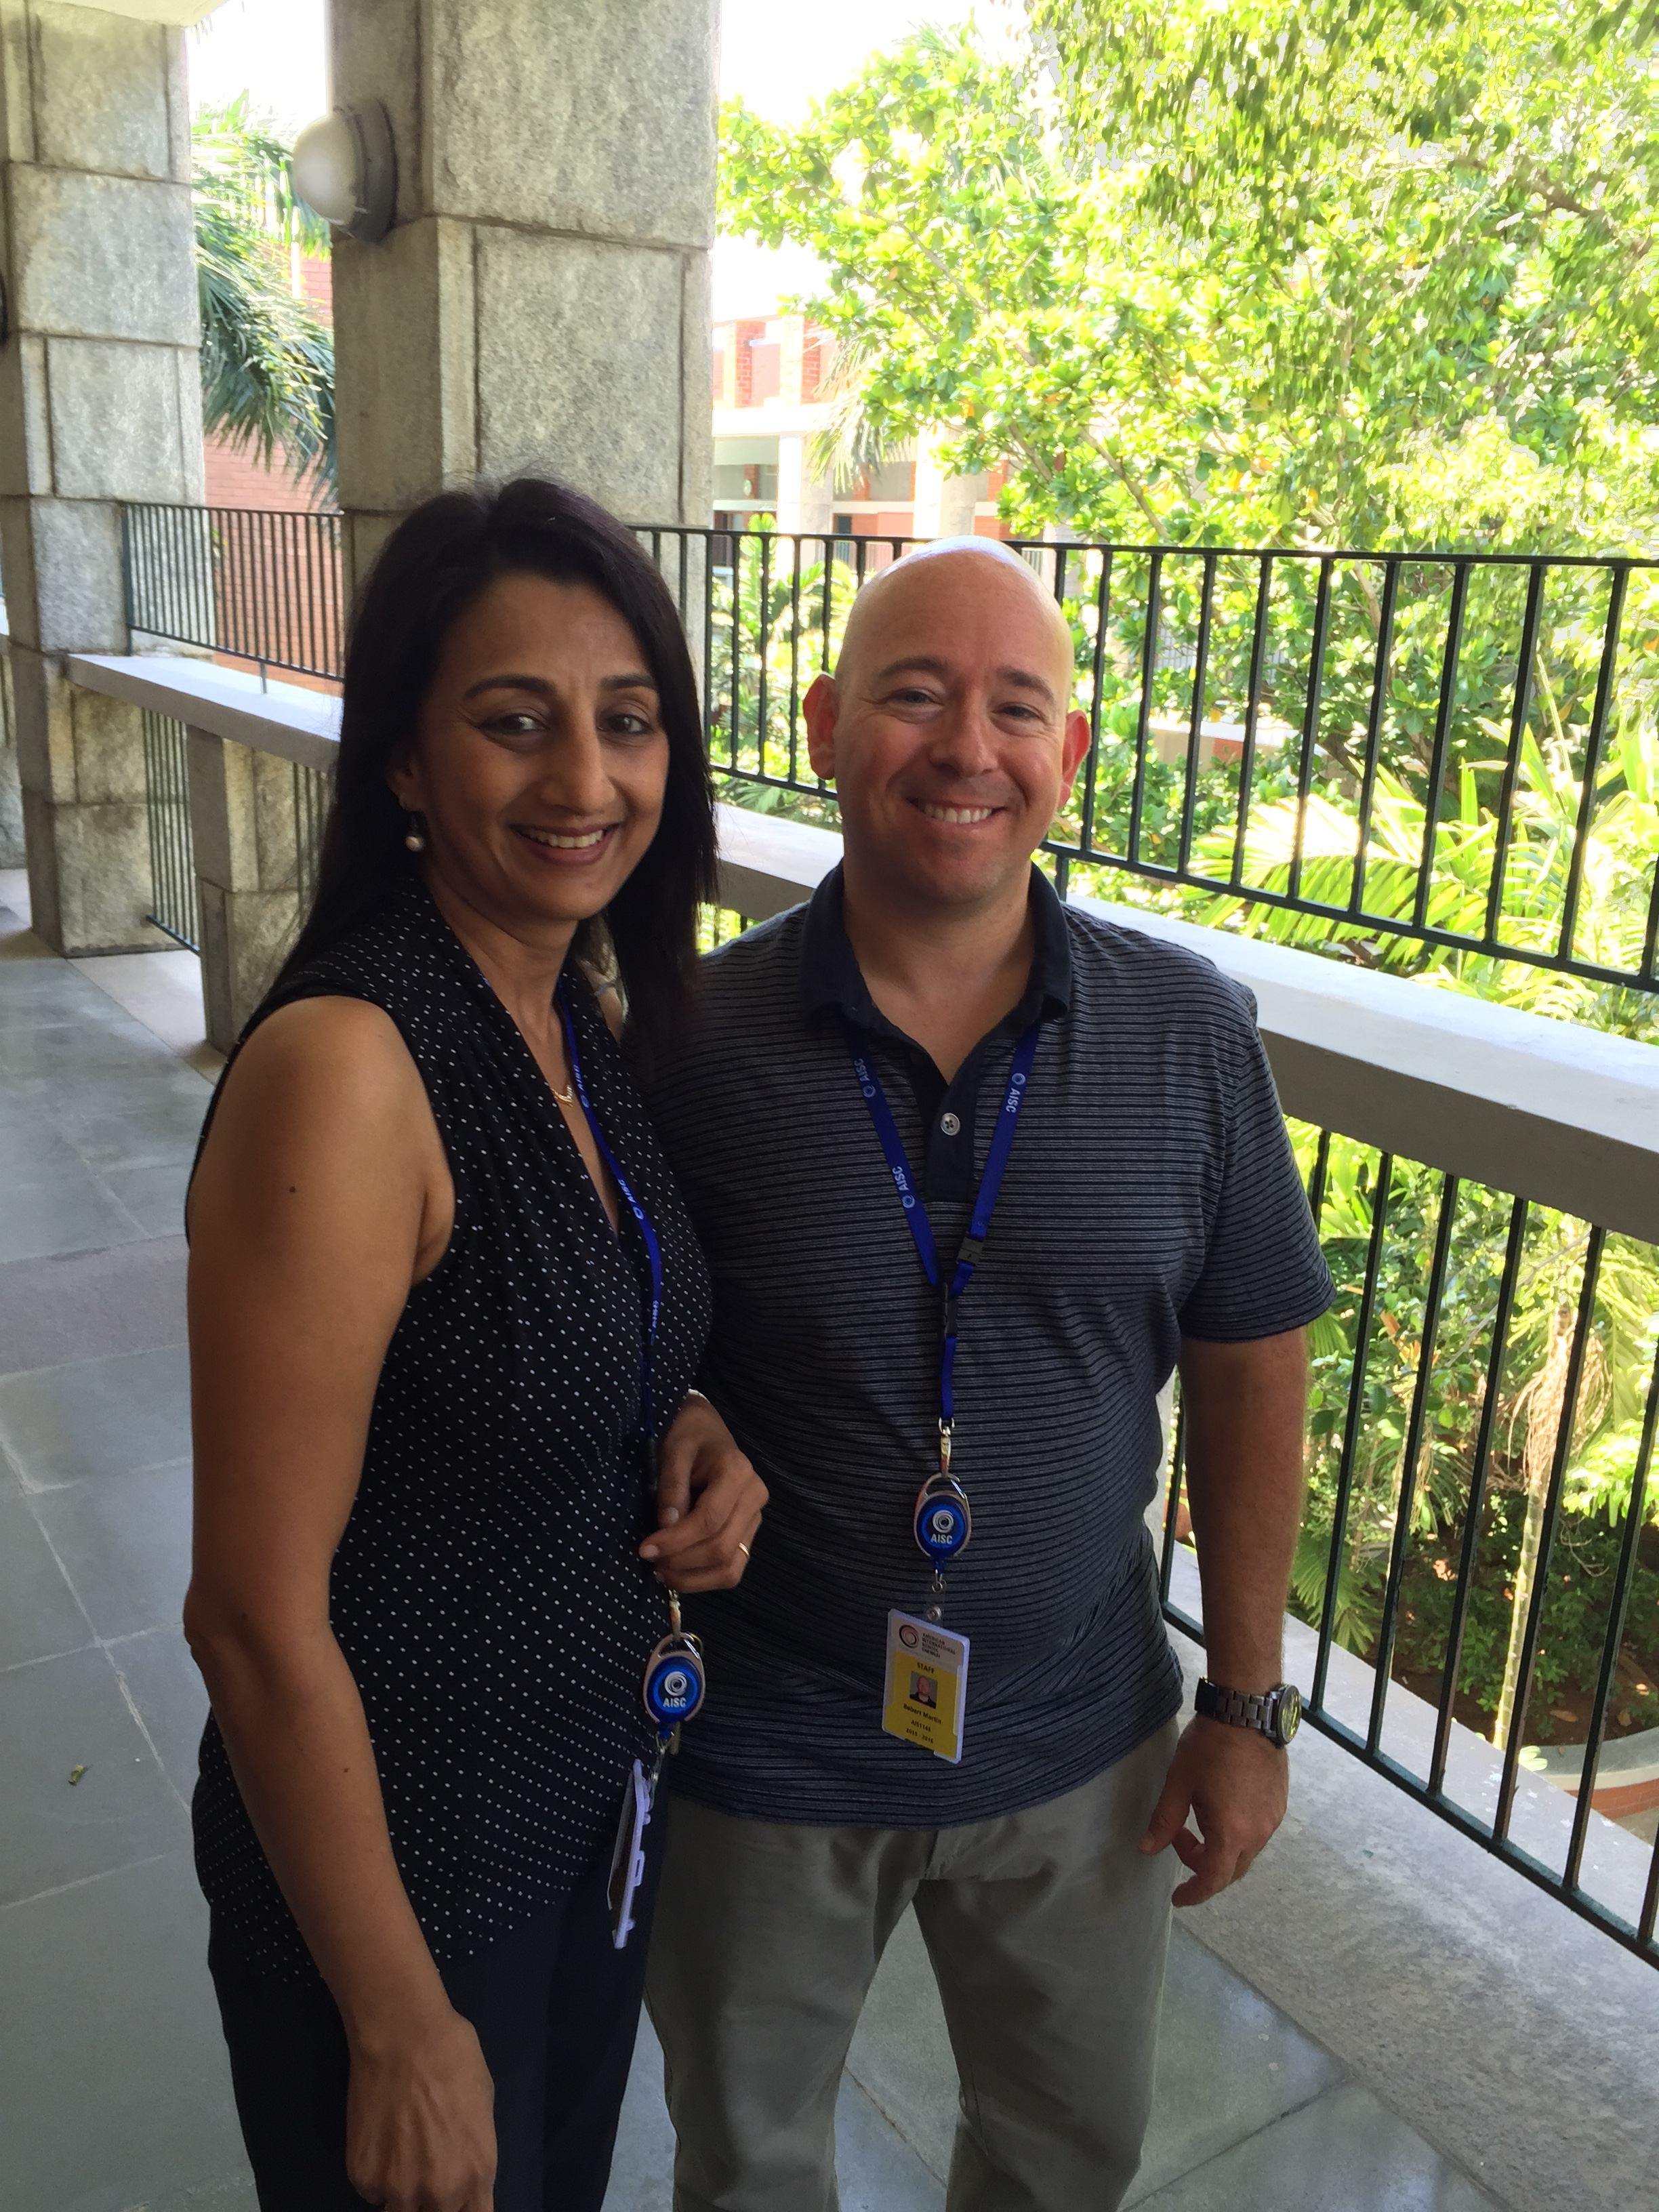 Ms. Jaya, EAL teacher, and Mr. Martin, Social Studies (Photo by Rob Martin)